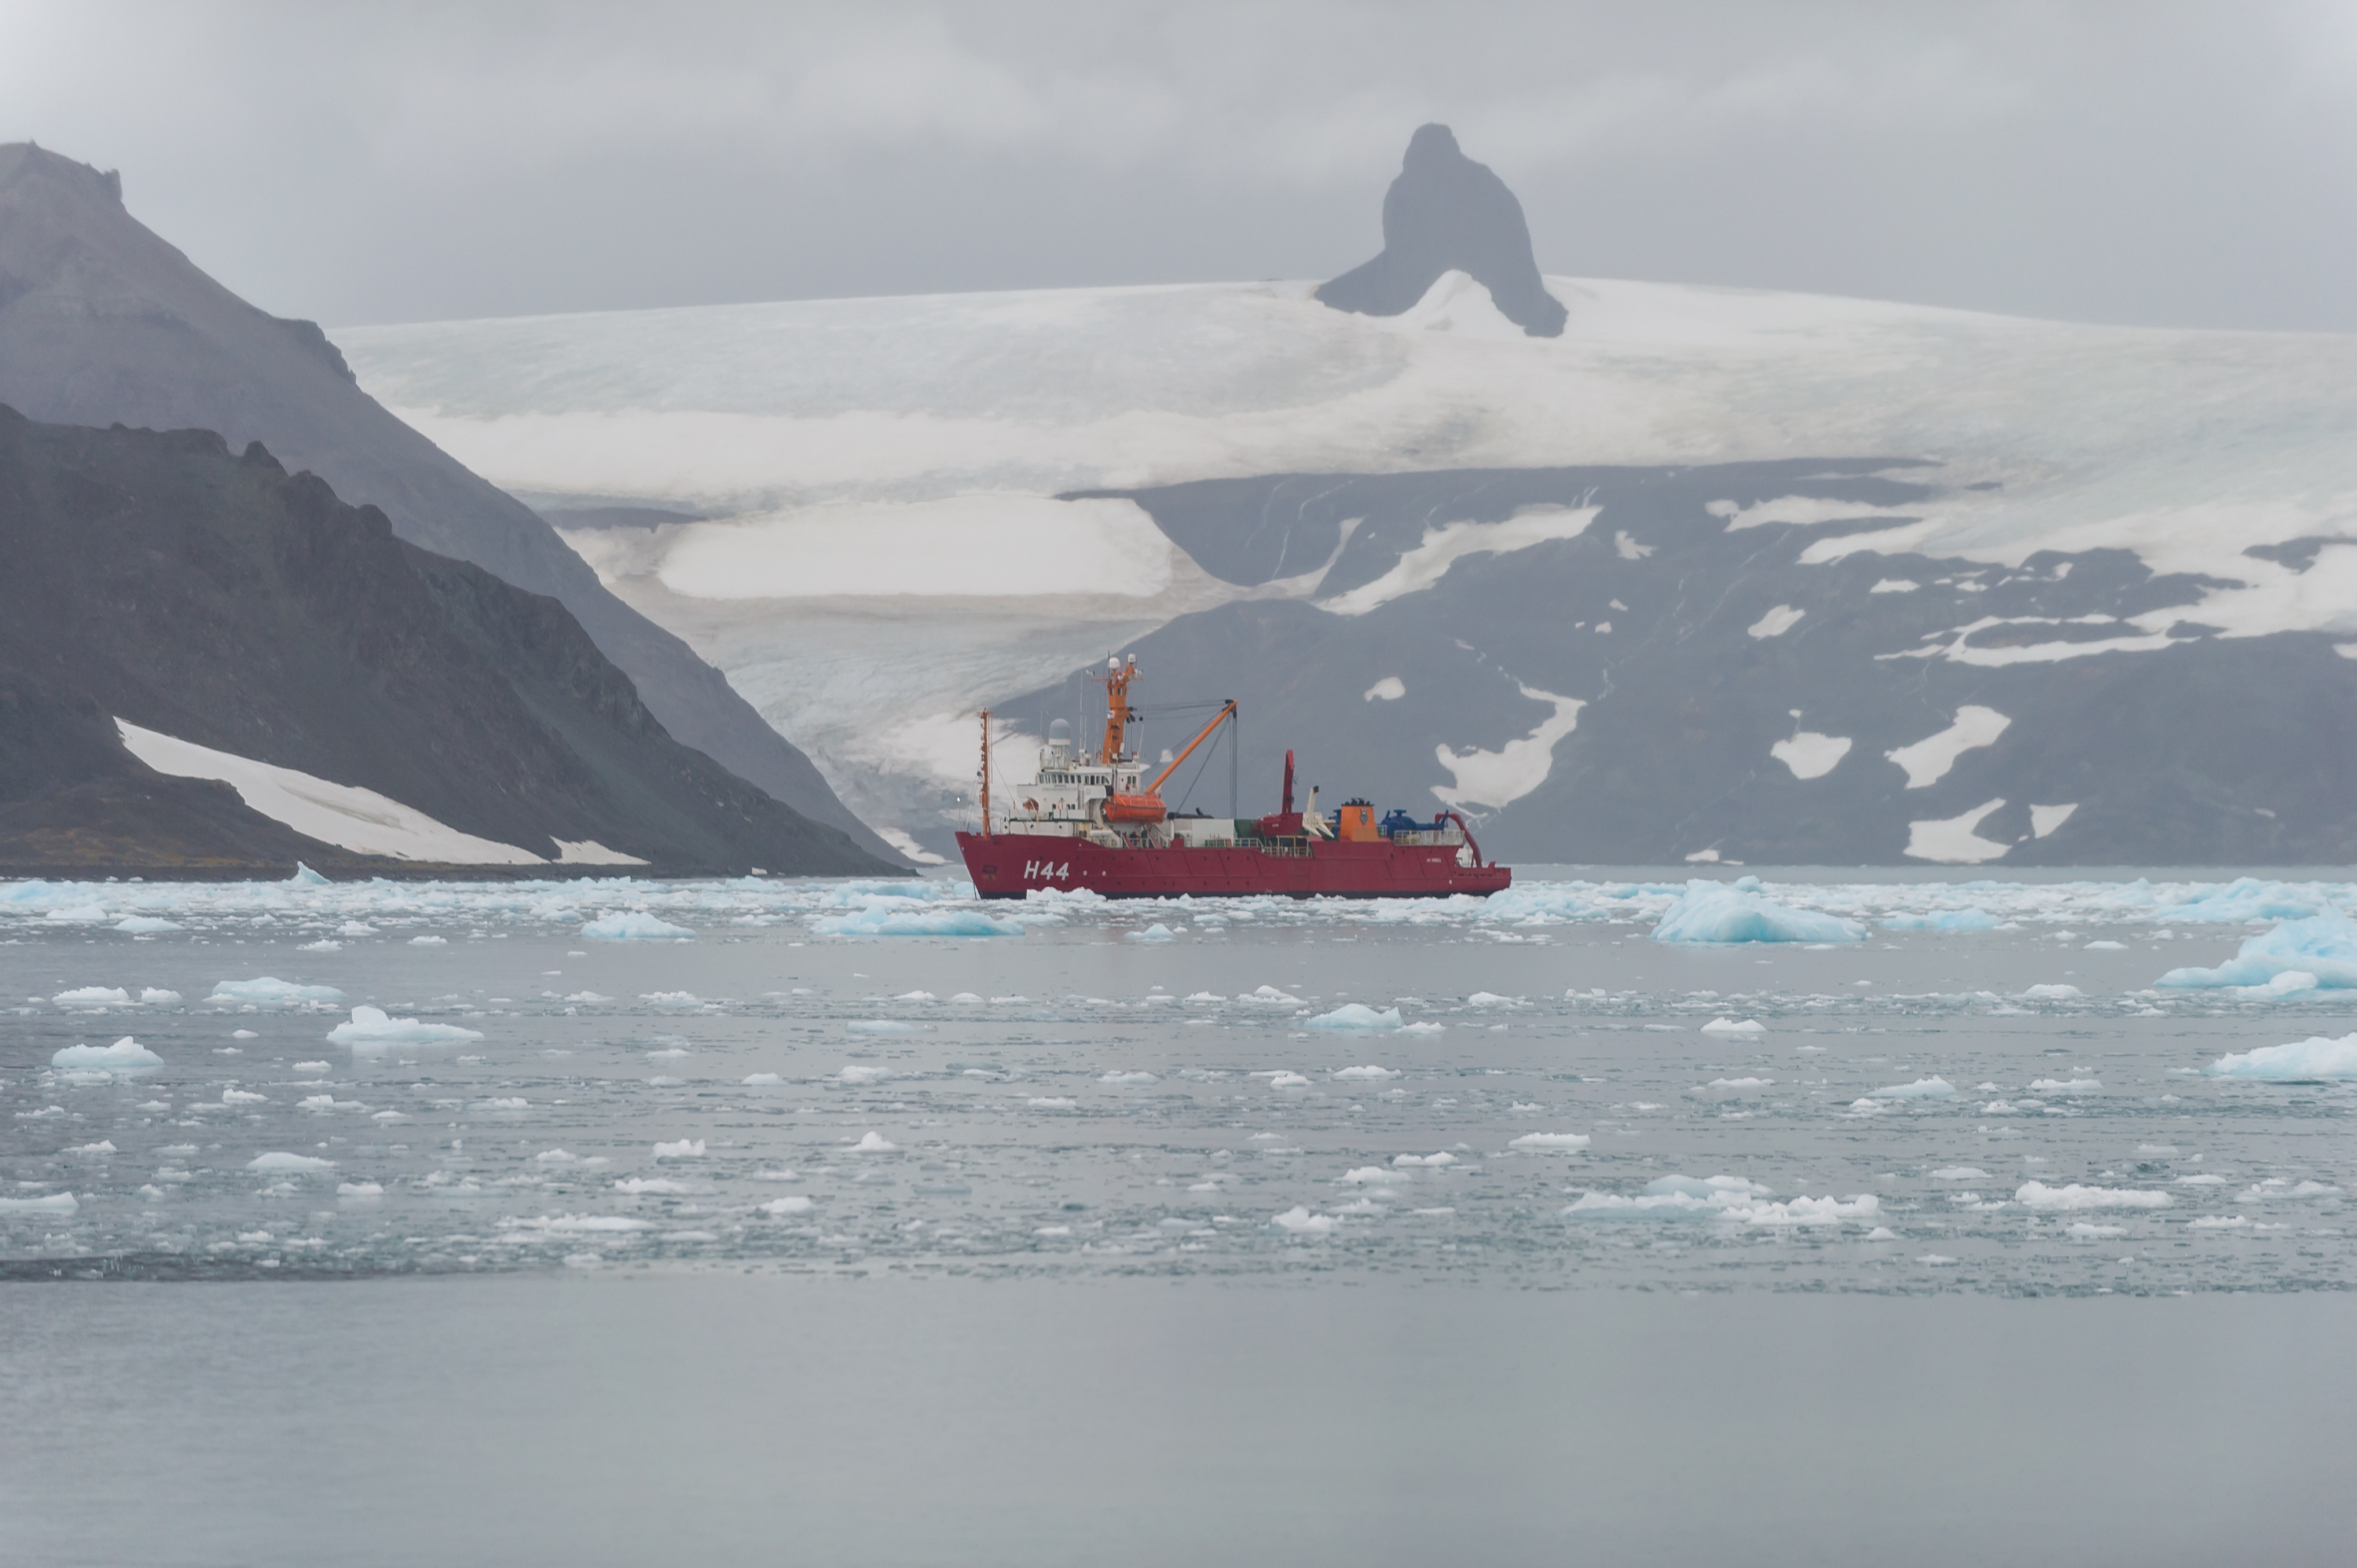 Polar ship Ary Rongel in Admiralty Bay with the Nunatak Needle in the background, on January 7, 2020, in King George Island, Antarctica.